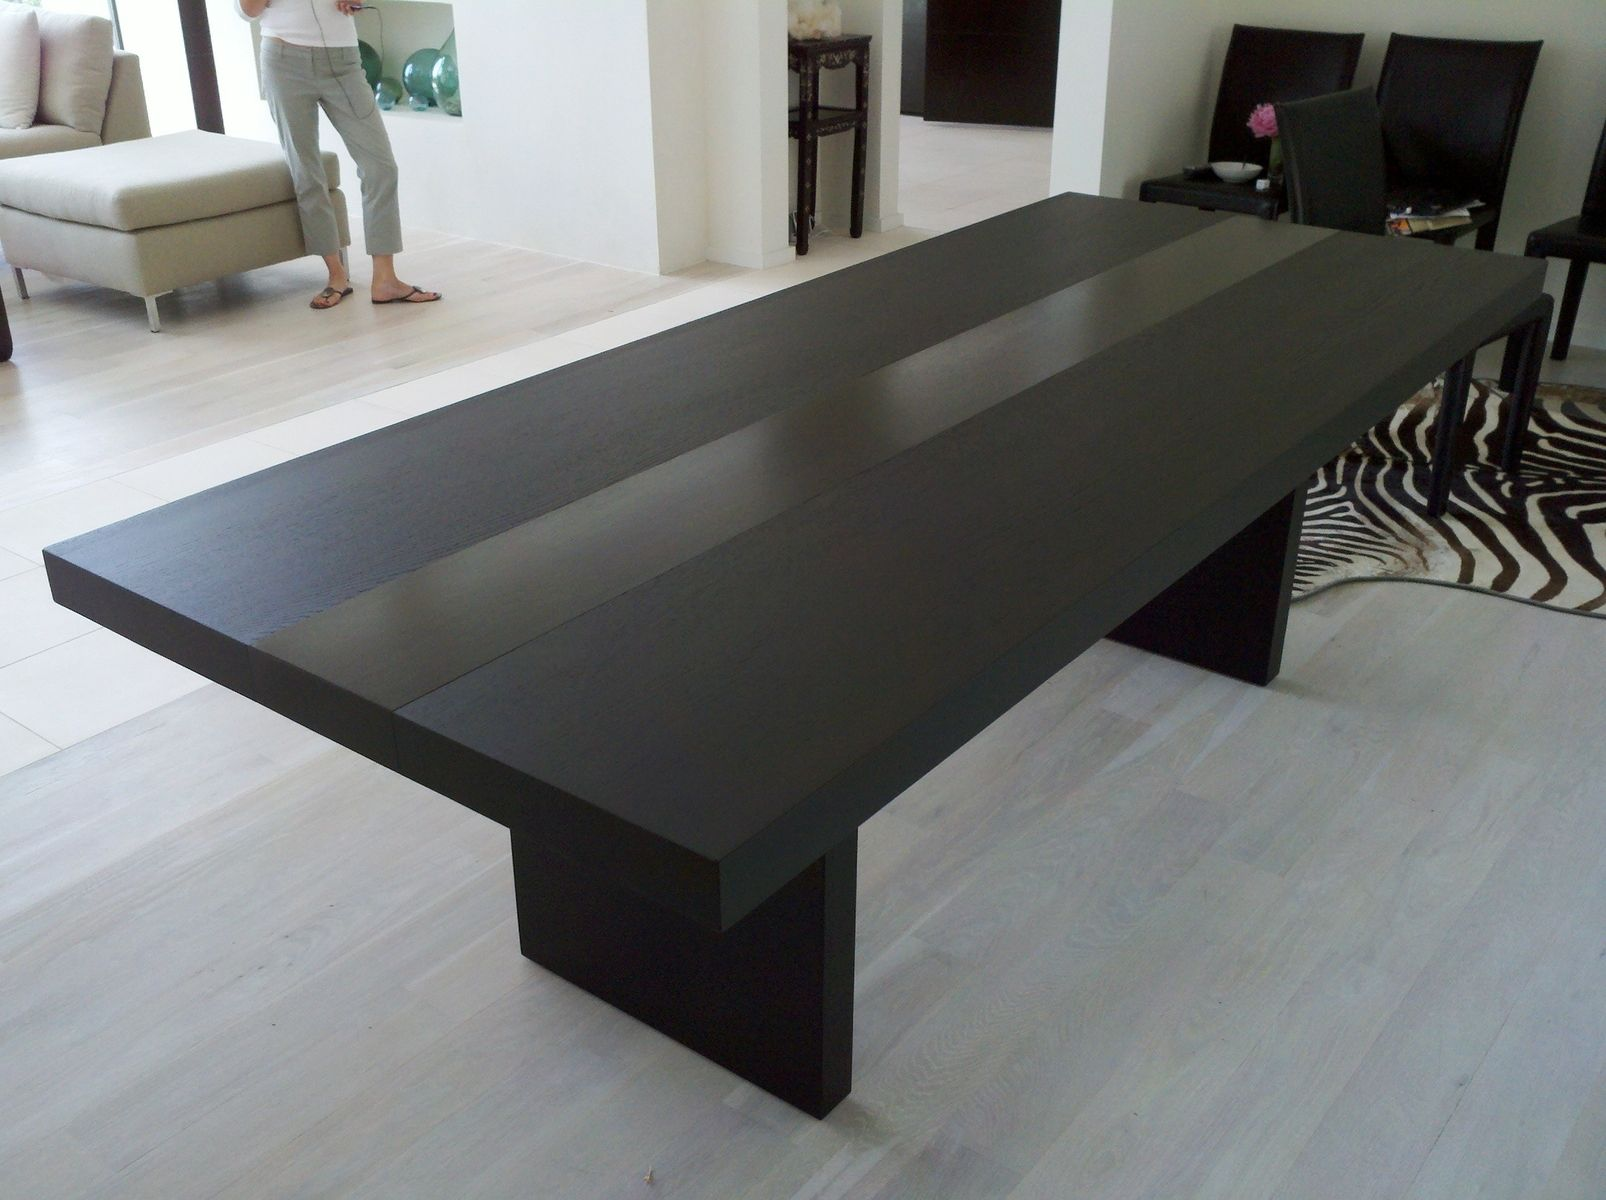 Entertain your guests with perfect dining table midcityeast for Dining table design modern